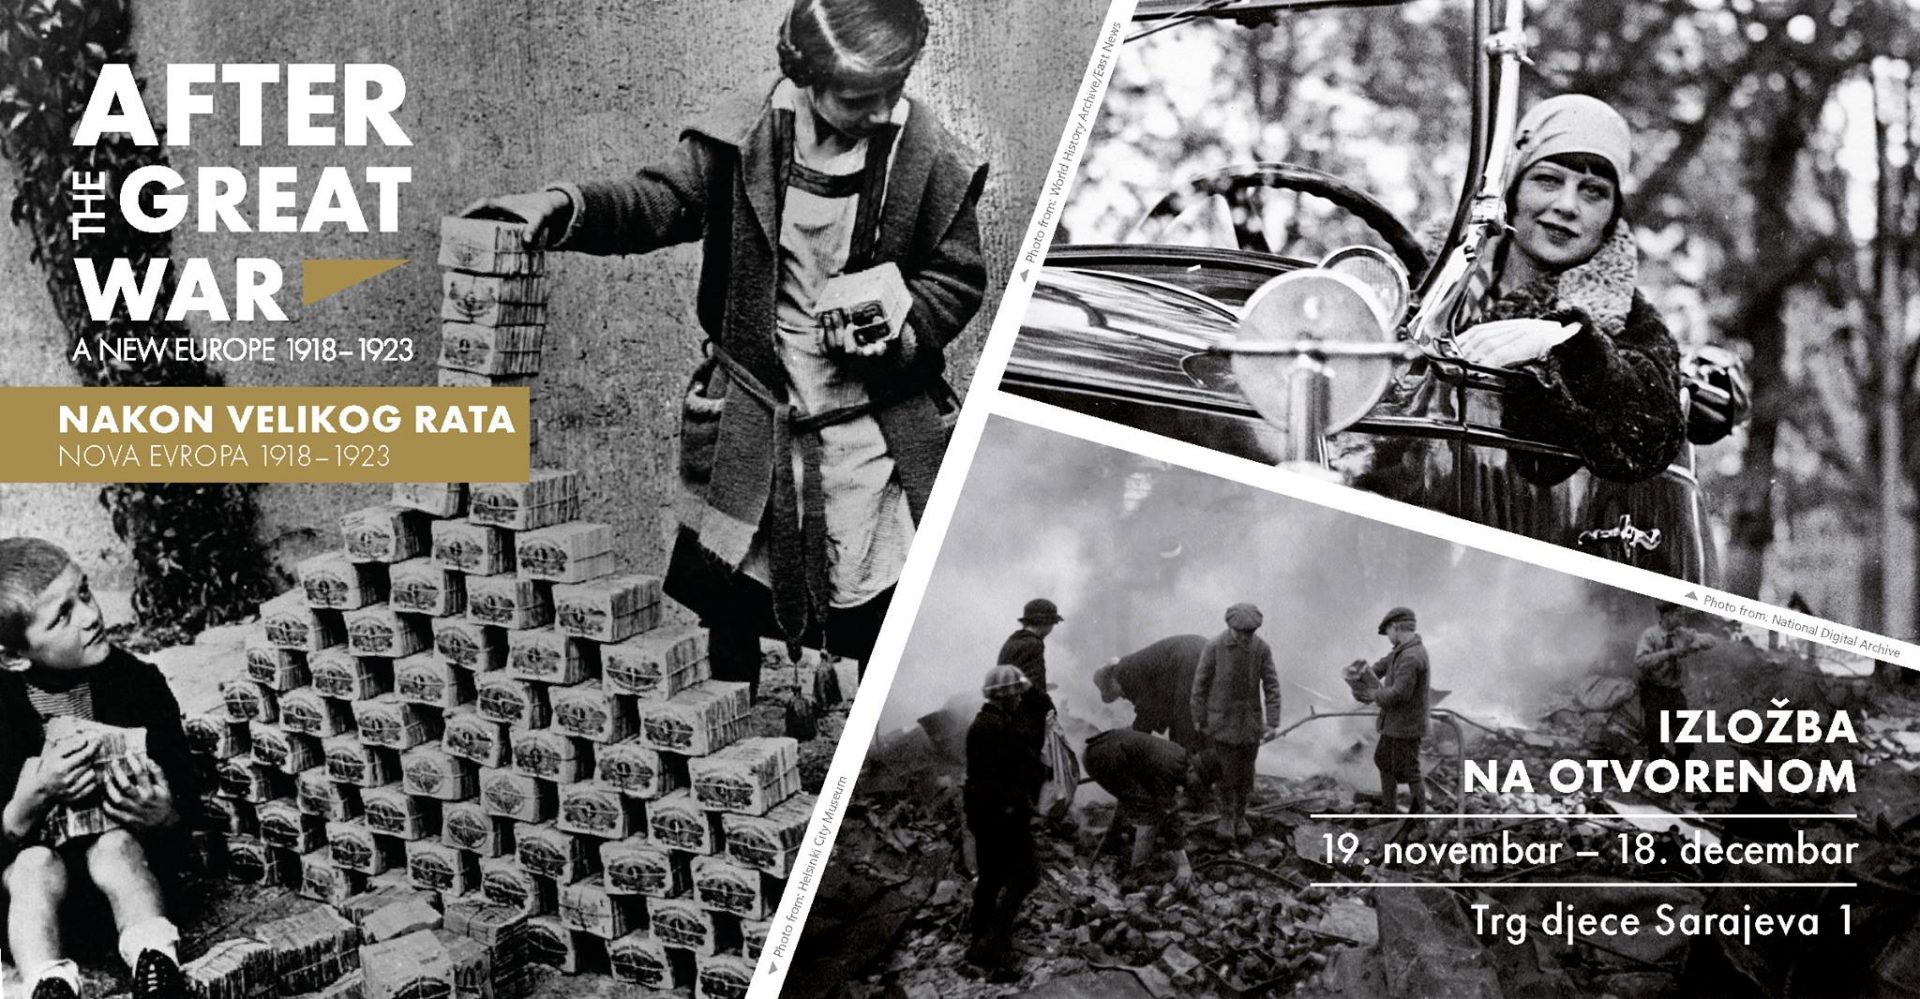 AFTER THE GREAT WAR  A NEW EUROPE 1918-1923 | Post Conflict Research